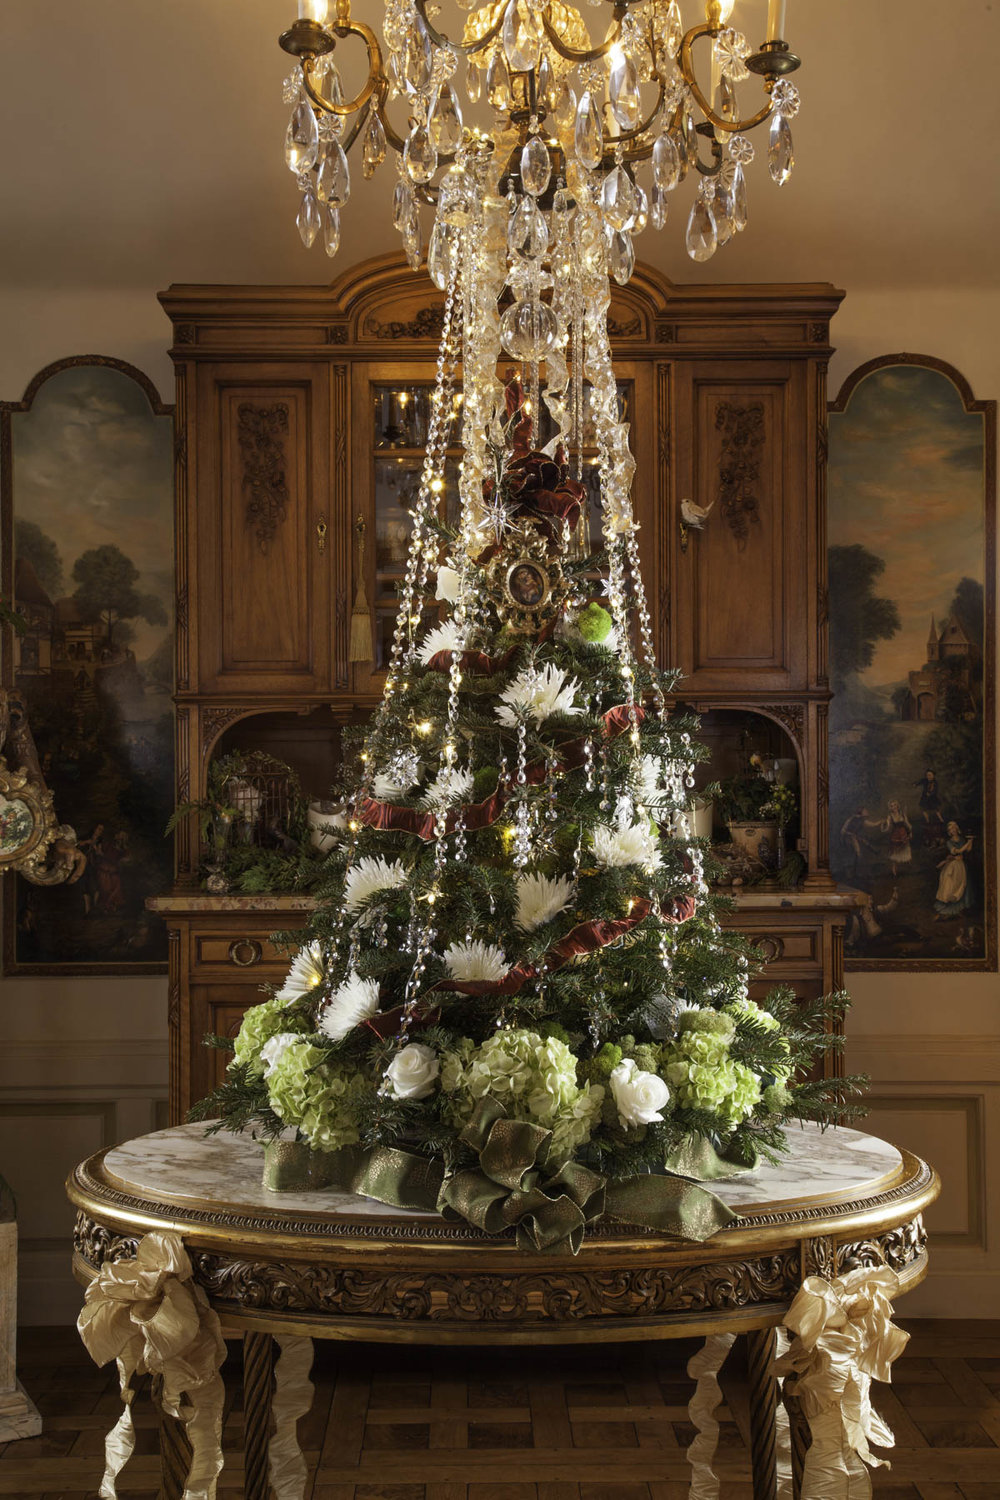 Floral Ornament Christmas Tree Holiday Design by Jennifer Chapman